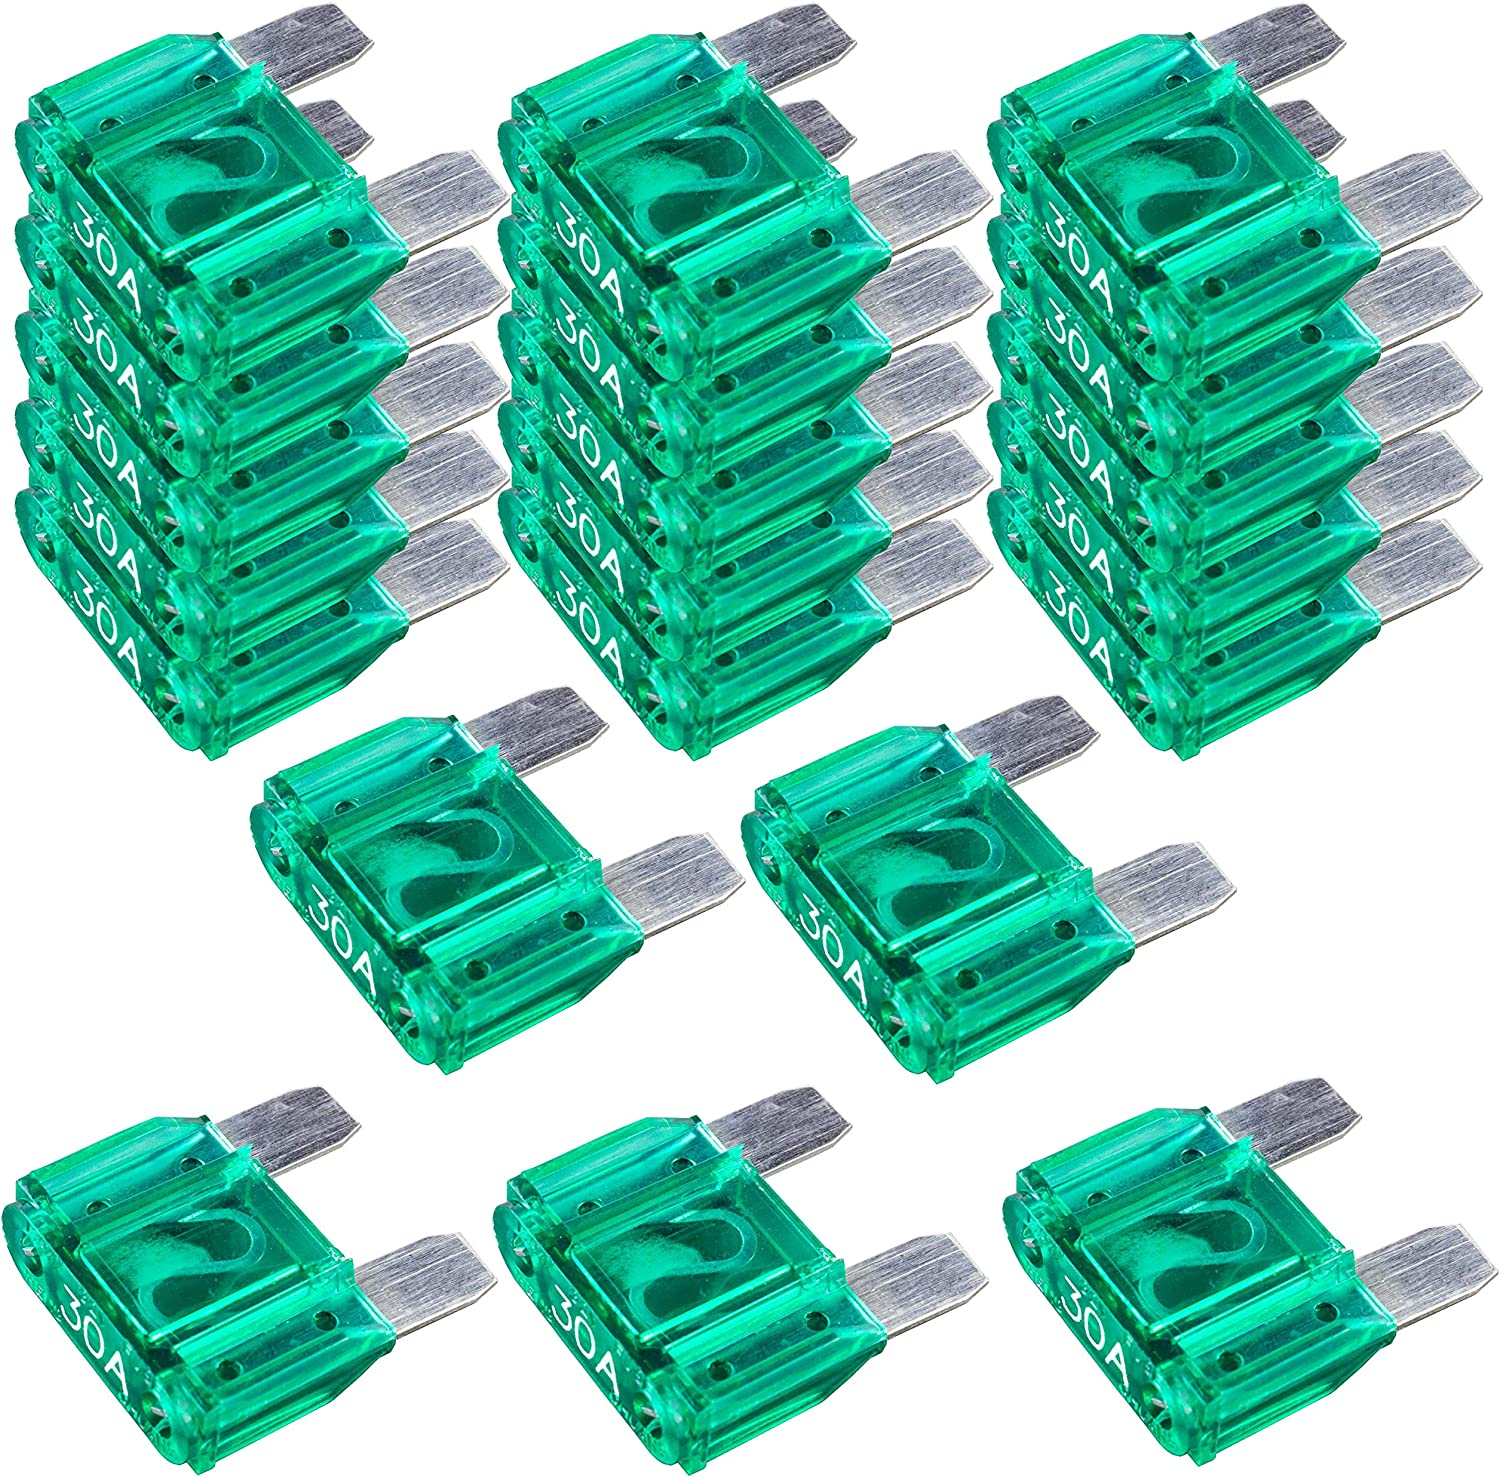 20 Pack Mail order 30 AMP Platinum APX MAXI Blade Truck Boat Excellent M Car Fuse 30A